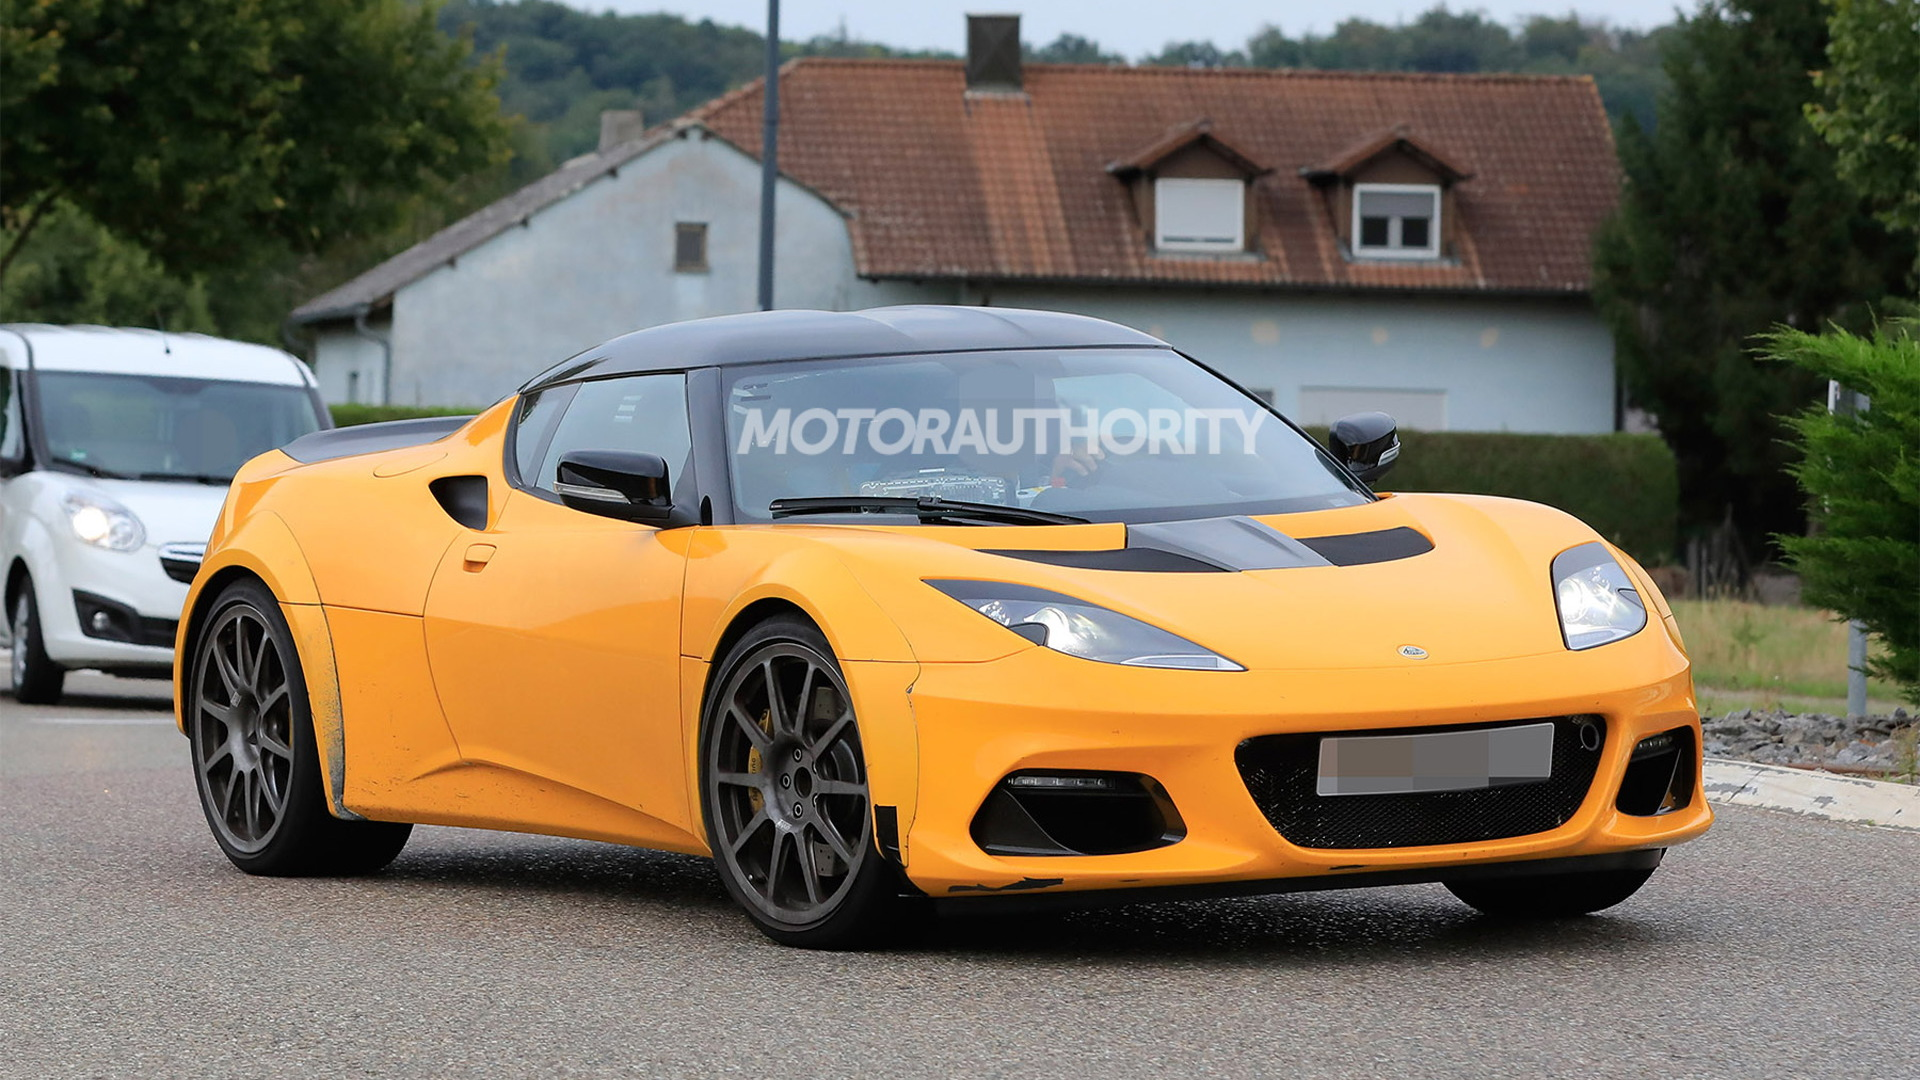 2022 Lotus Esprit spiritual successor test mule spy shots - Photo credit: S. Baldauf/SB-Medien